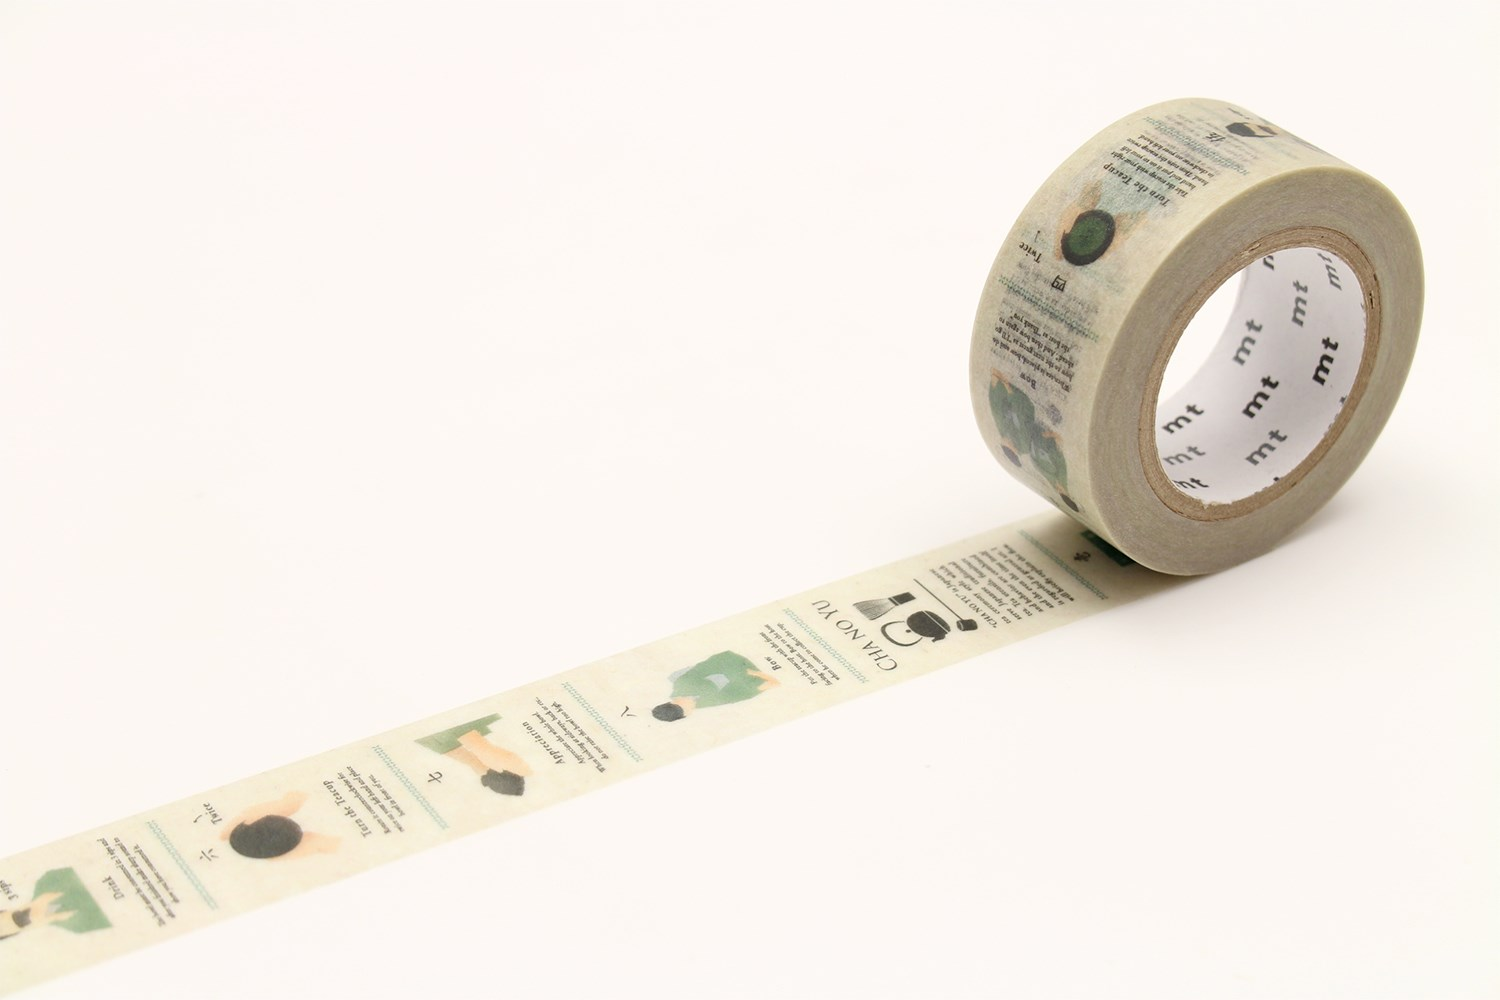 mt-washi-masking-tape-mt-ex-tea-ceremony-MTEX1P145-2.JPG